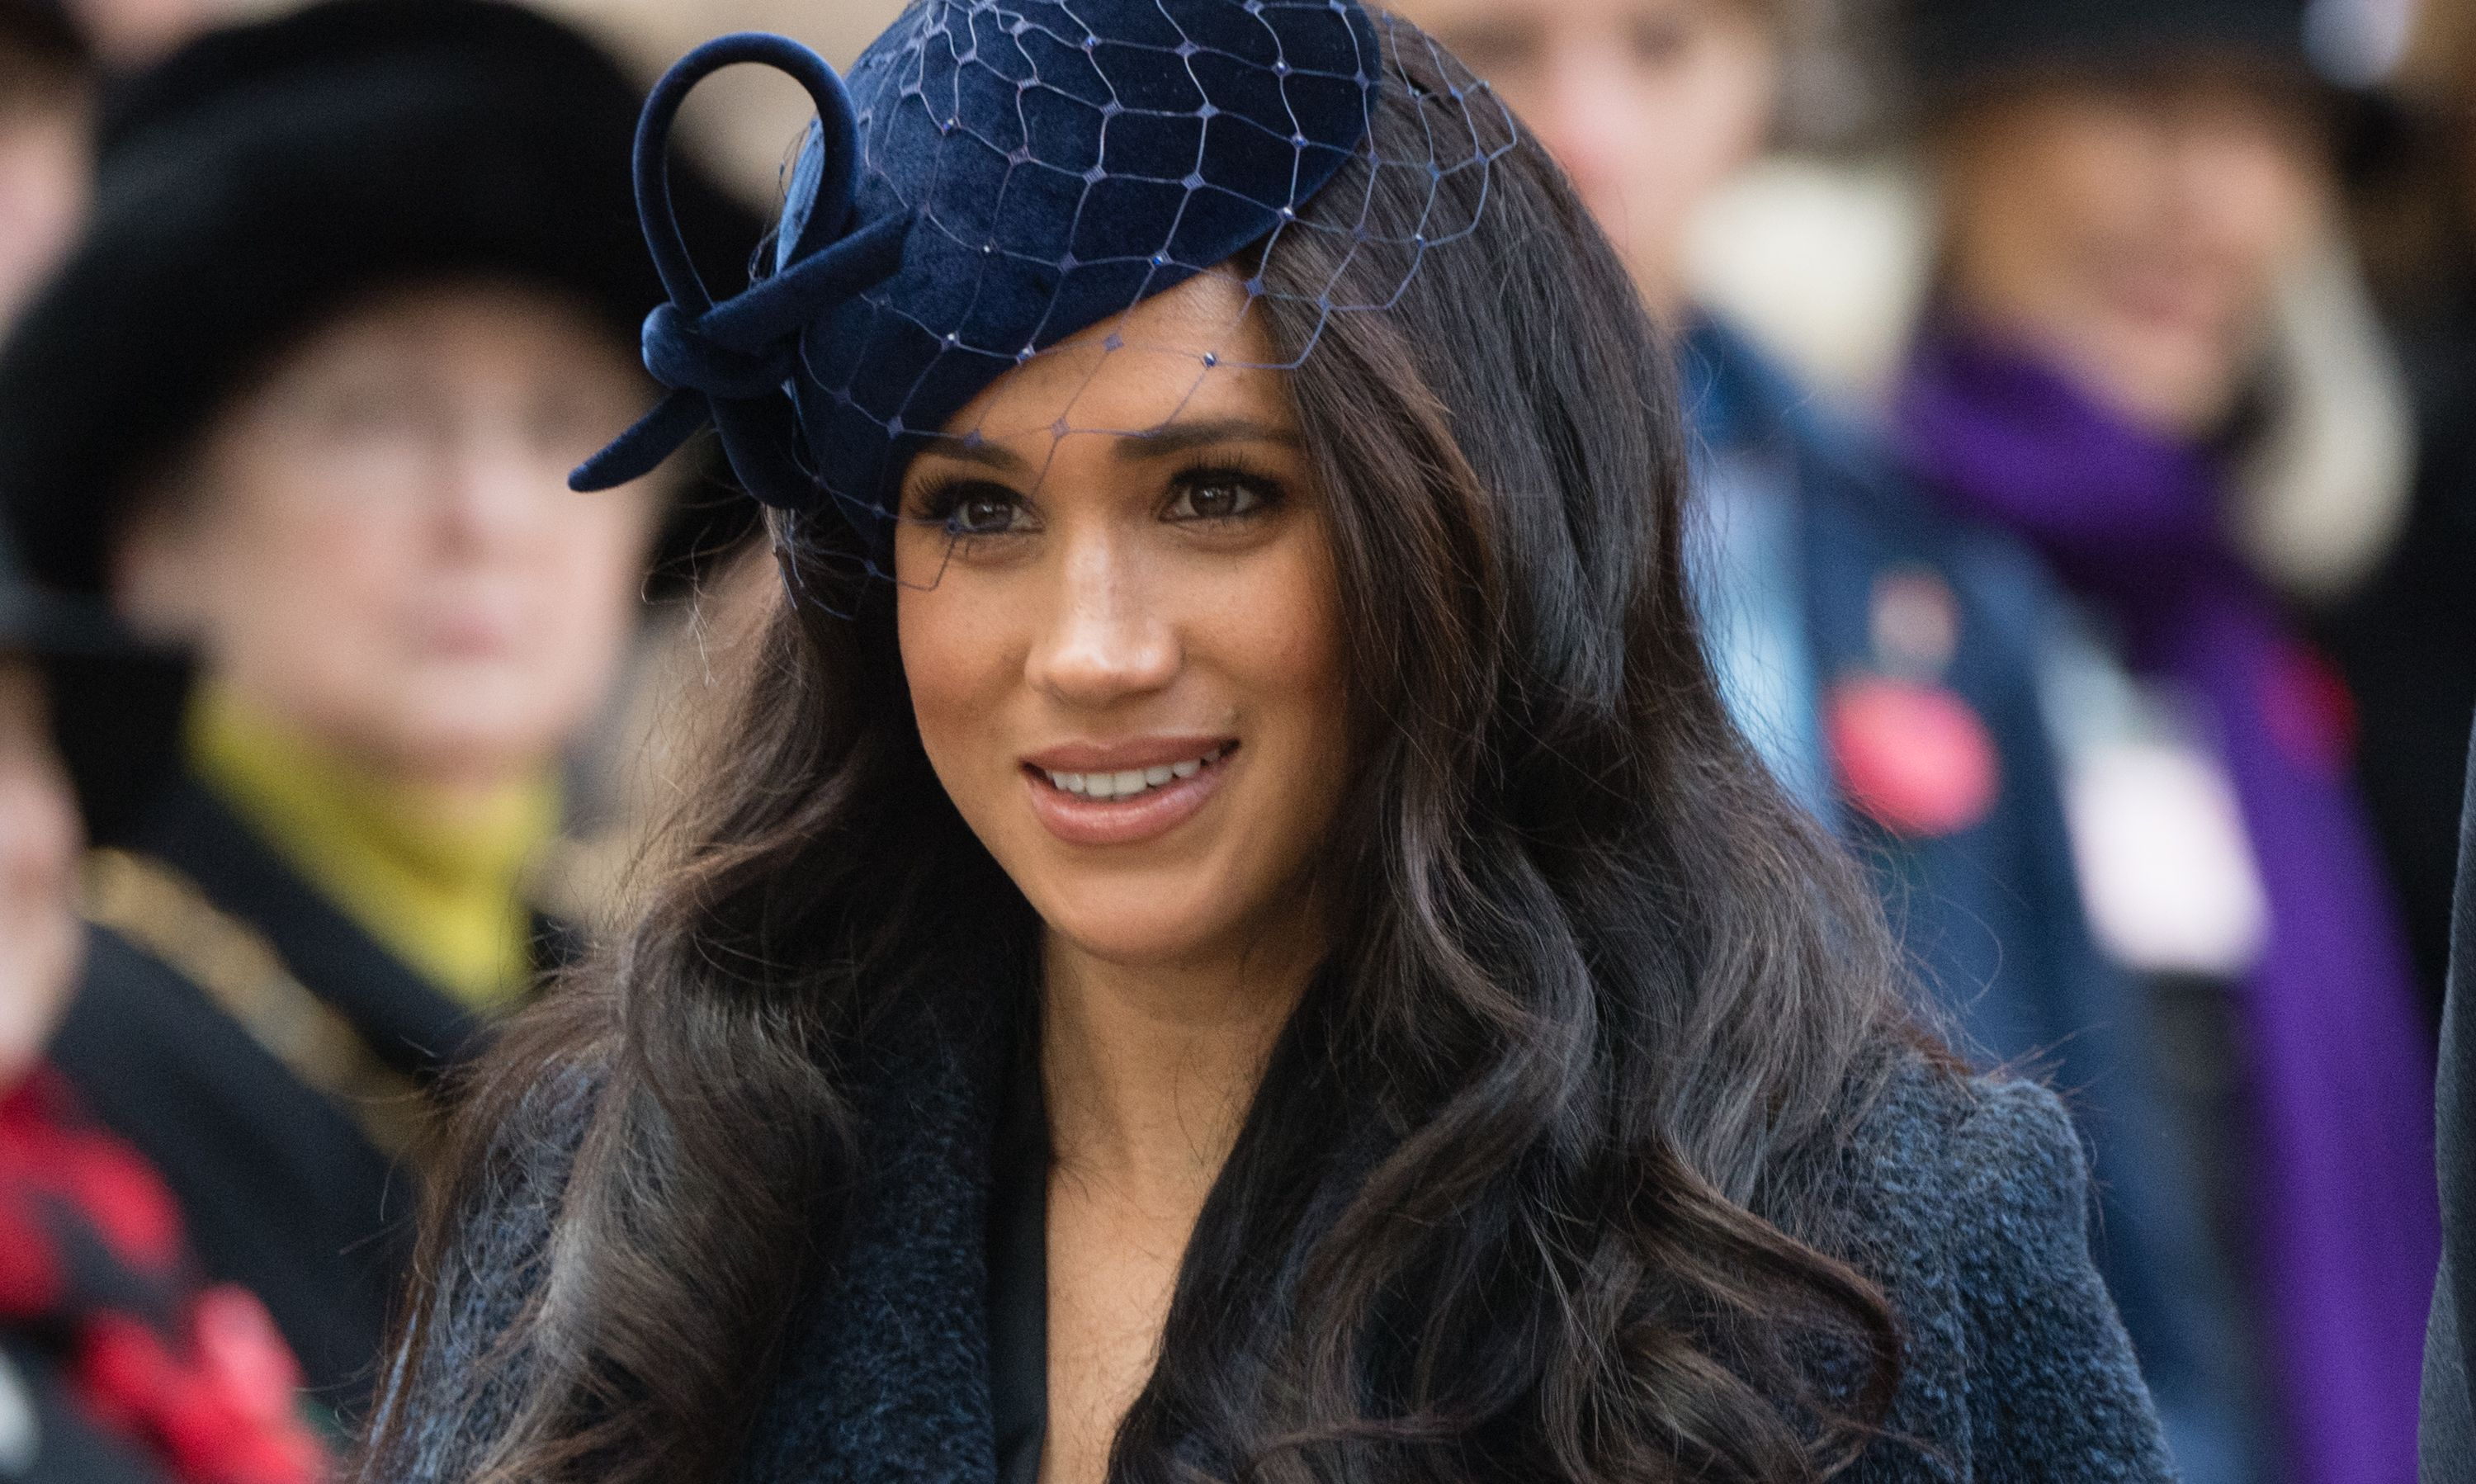 Meghan Markle just shared a throwback photo from before she was a royal